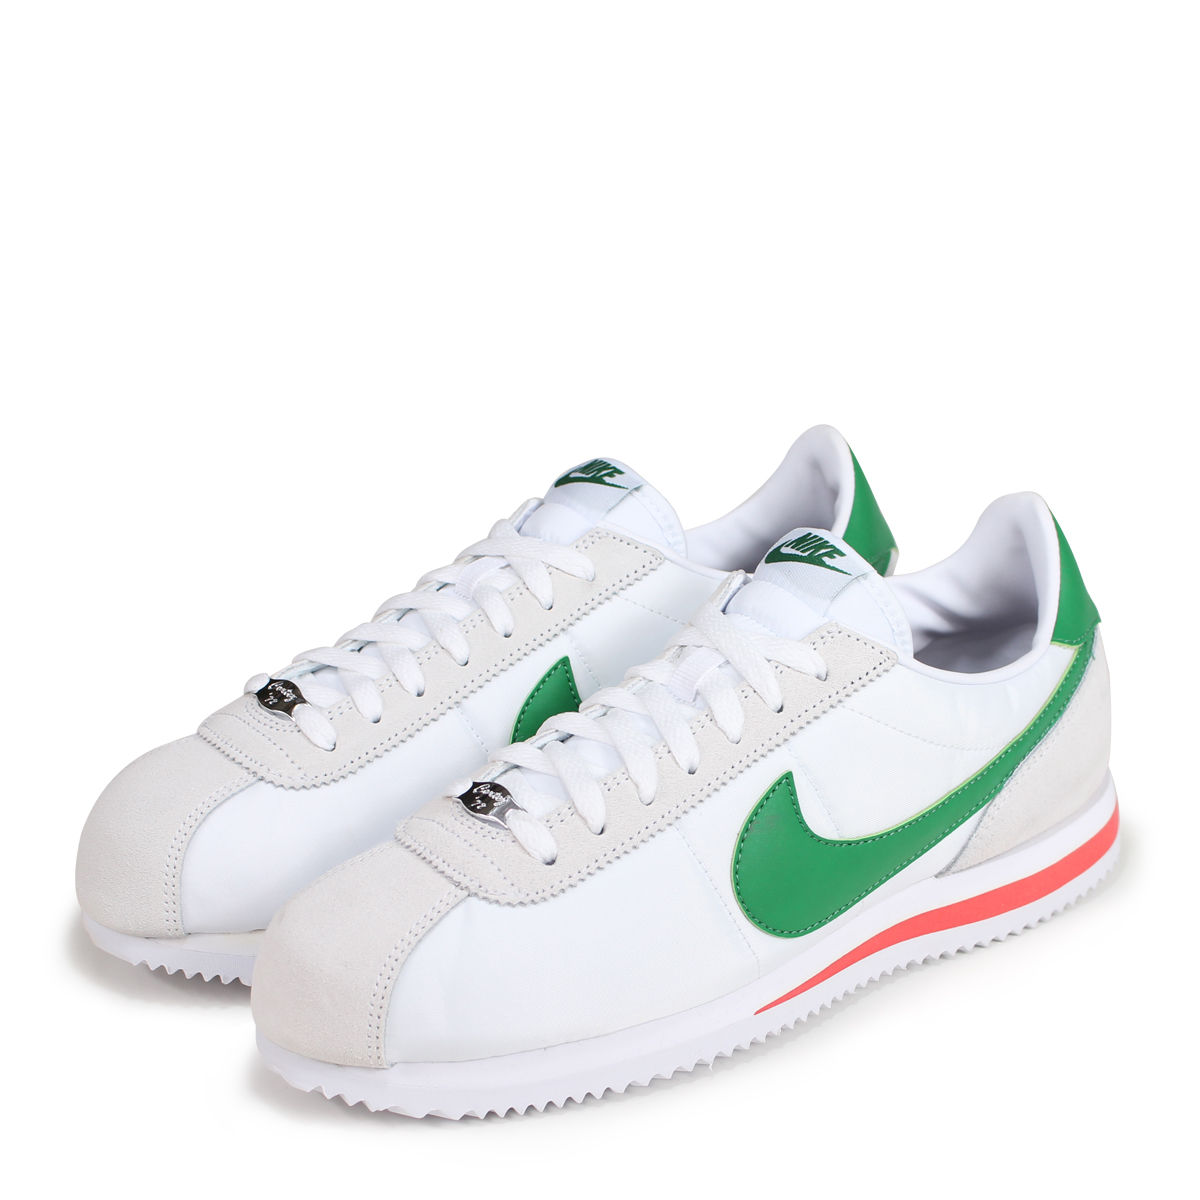 design de qualité f0994 6ee62 NIKE CORTEZ BASIC NYLON ナイキコルテッツスニーカーメンズ 819,720-103 white [load planned  Shinnyu load in reservation product 7/19 containing] [187]